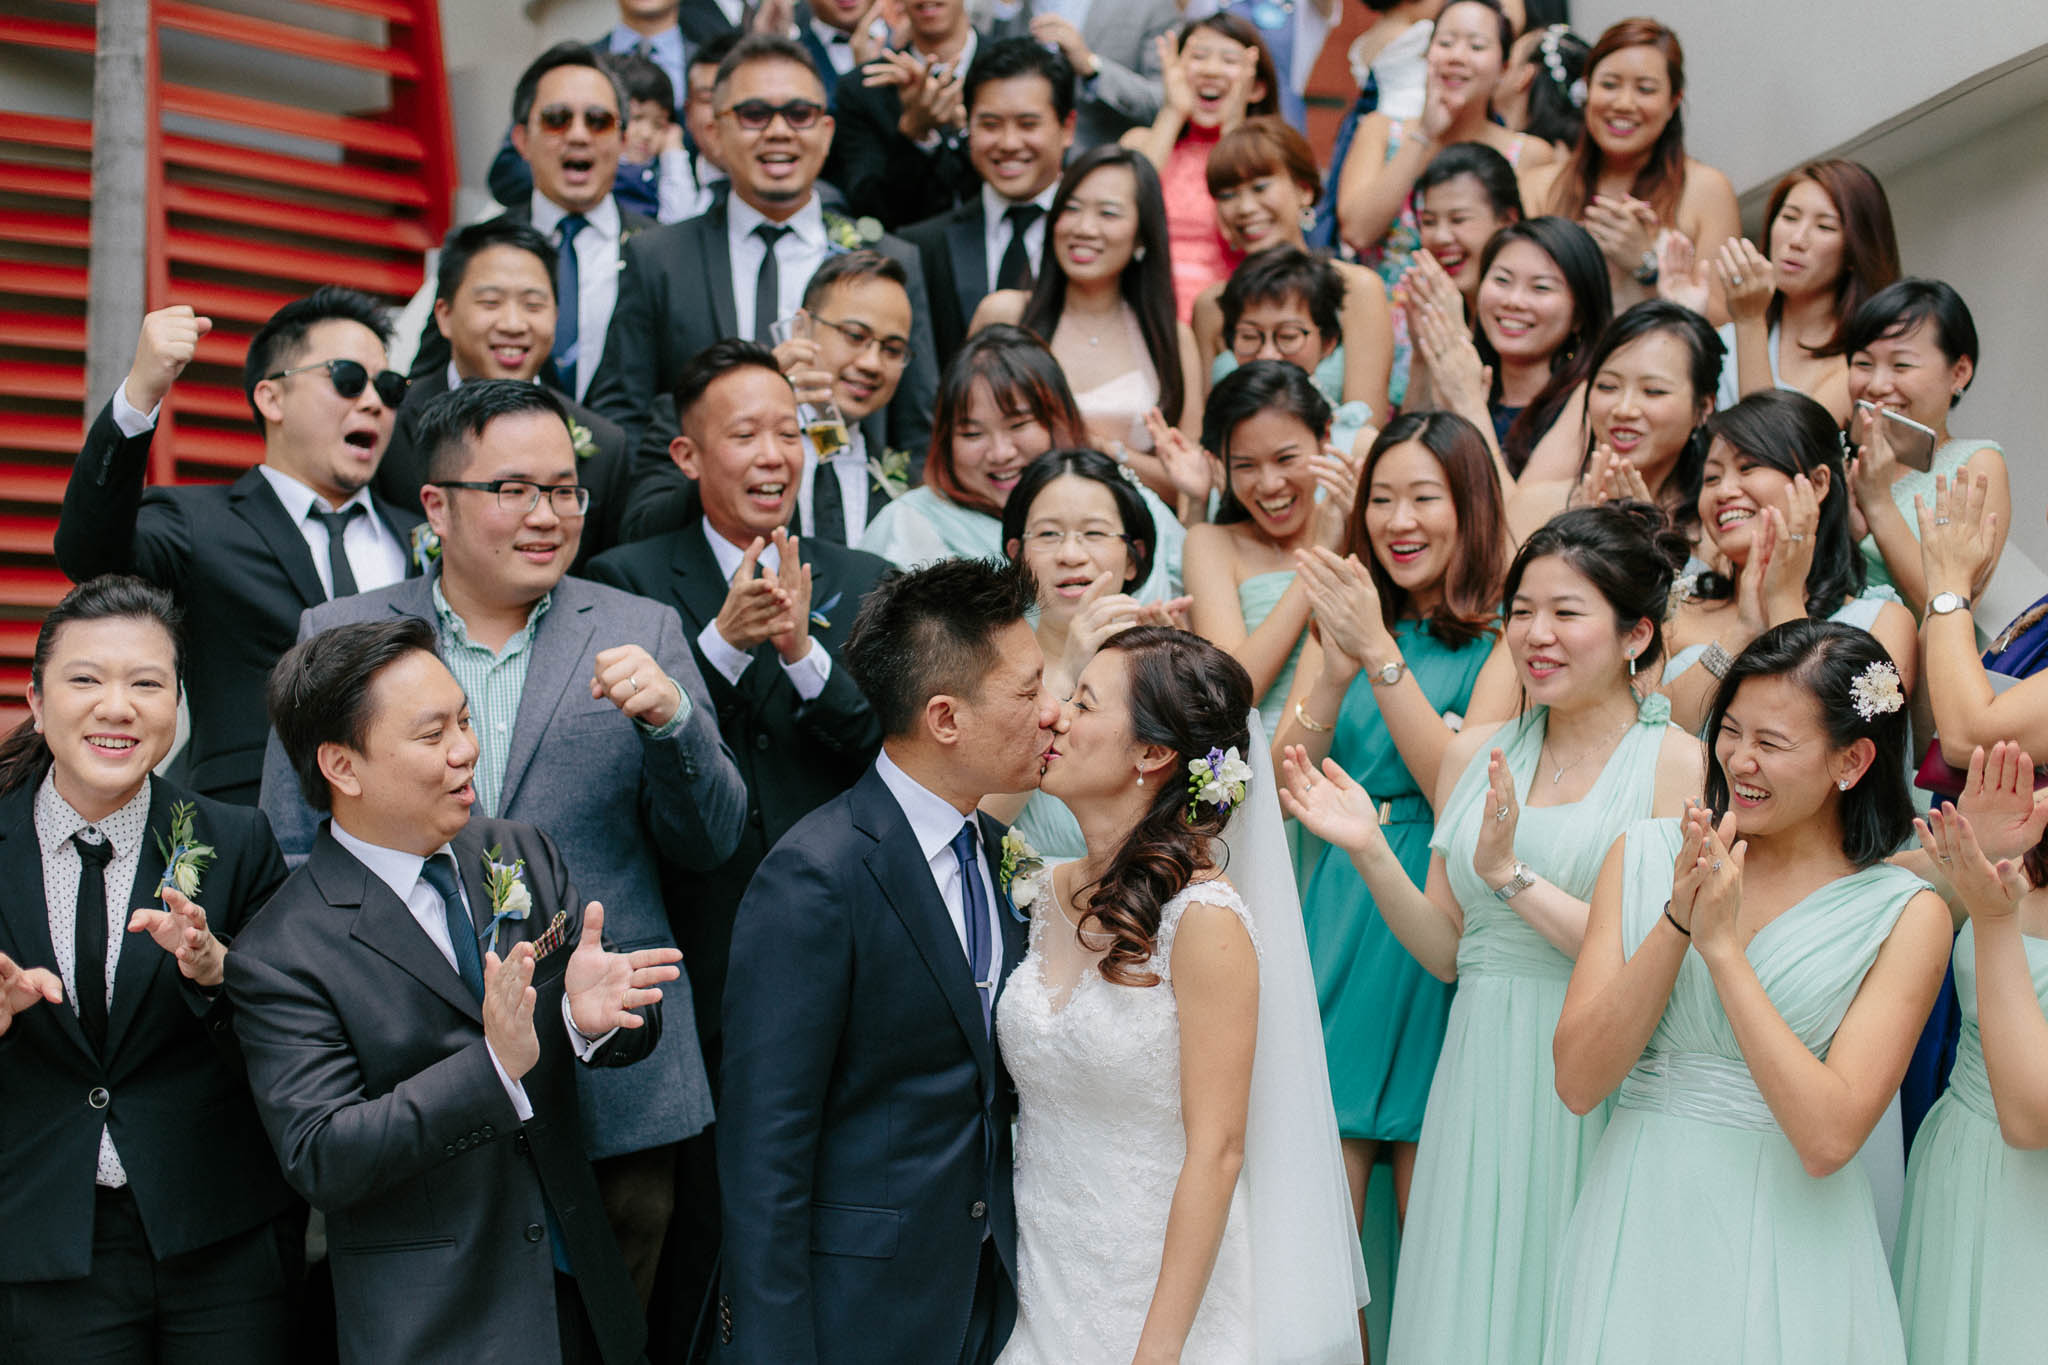 singapore-wedding-photographer-we-made-these-2016-selects-105.jpg